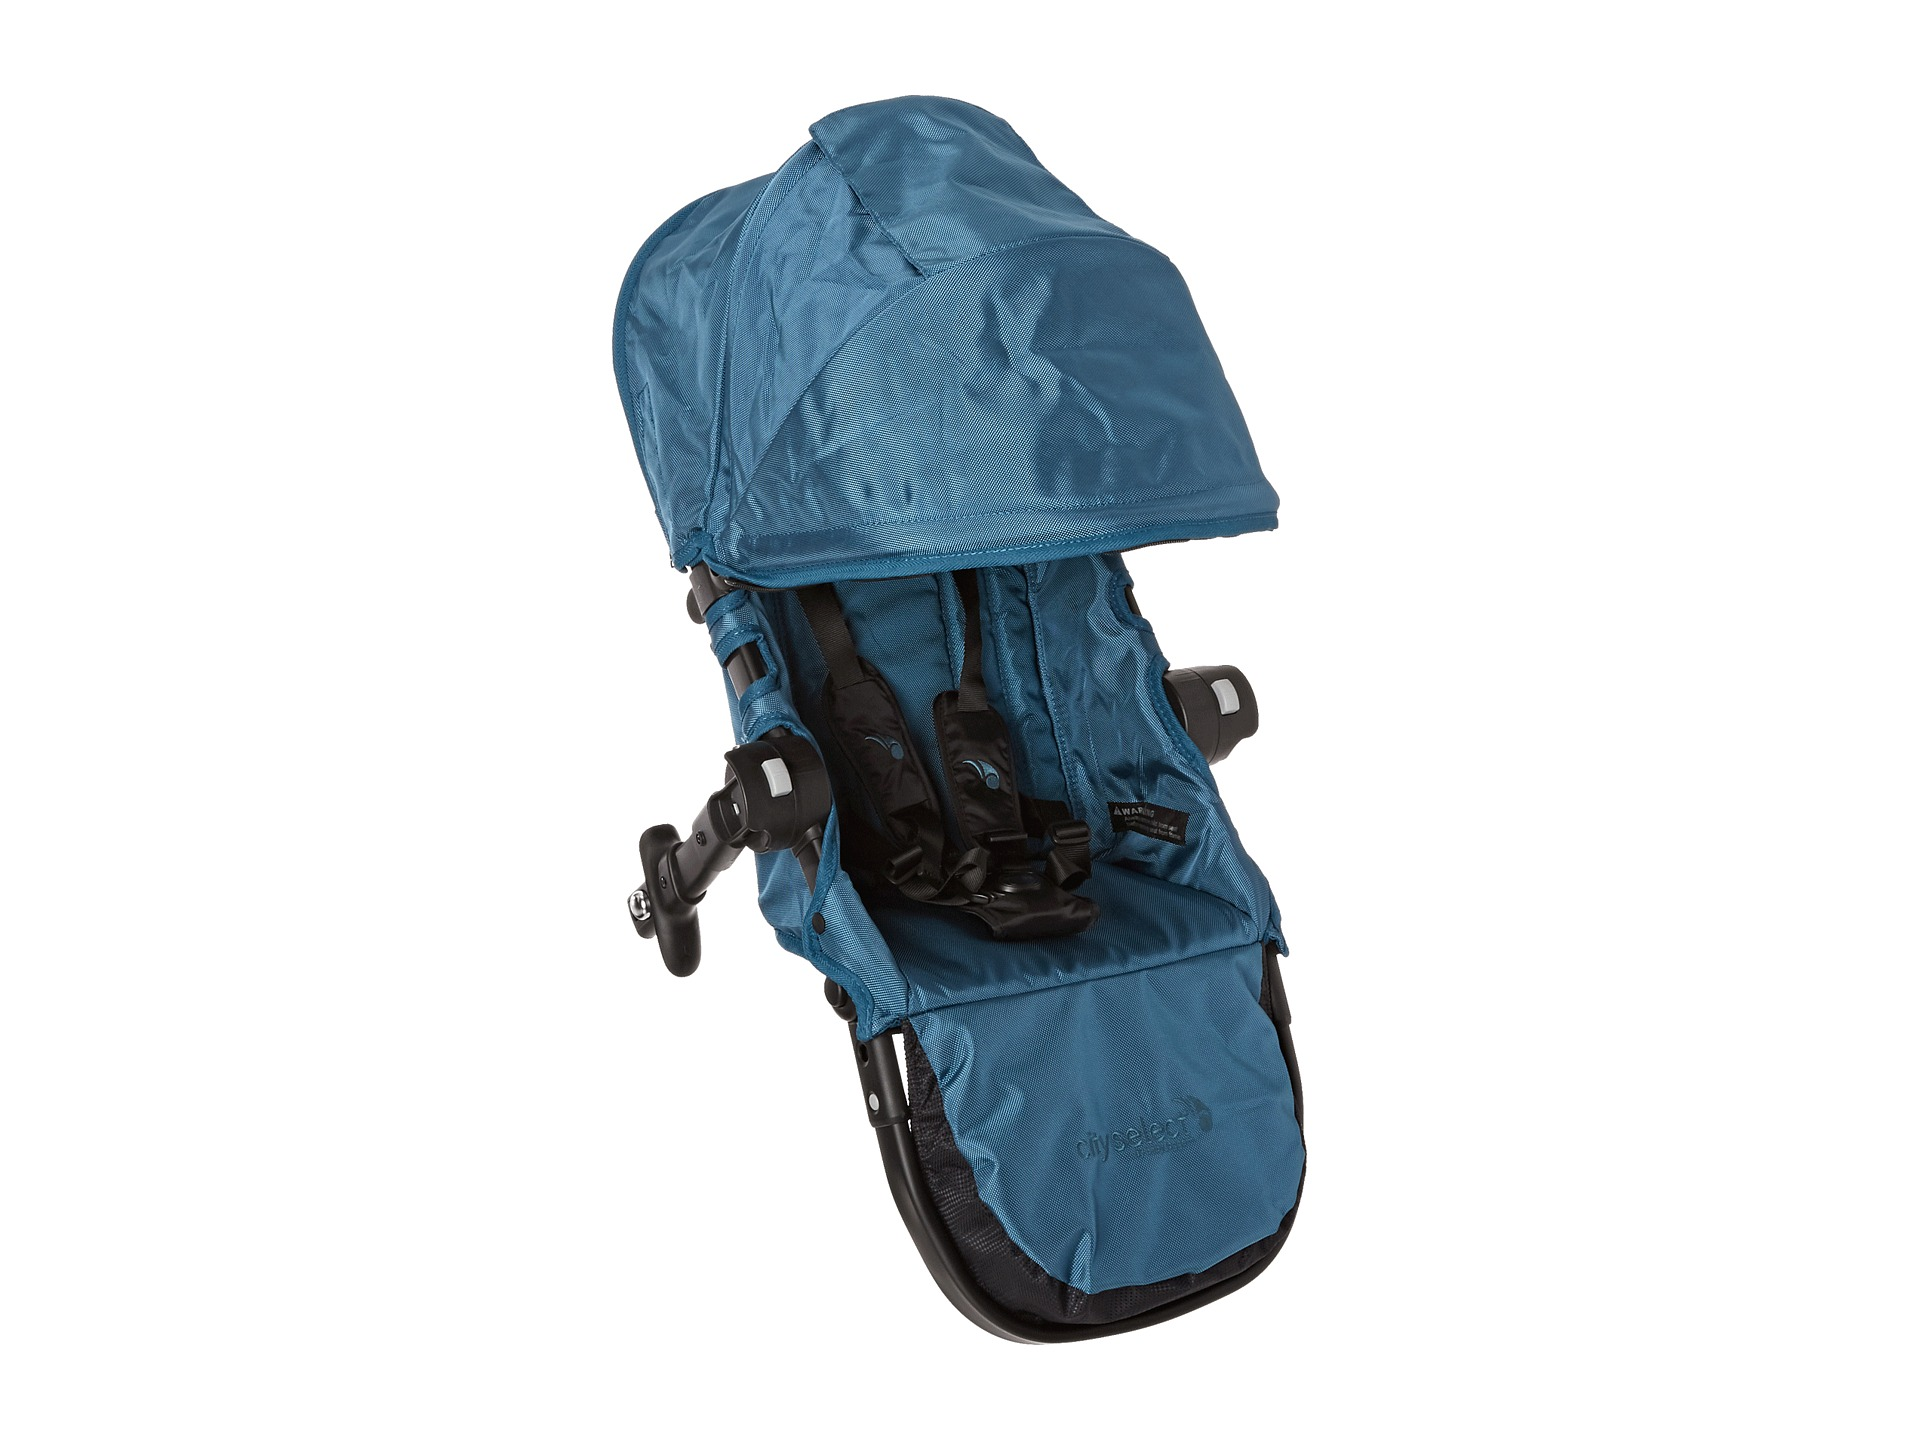 Baby Jogger City Mini Zip Compact 4 Wheel Foldable Lightweight Stroller, Teal See Details Product - 2 in 1 Double Child Baby Bike Trailer Bicycle Carrier Jogger Stroller.